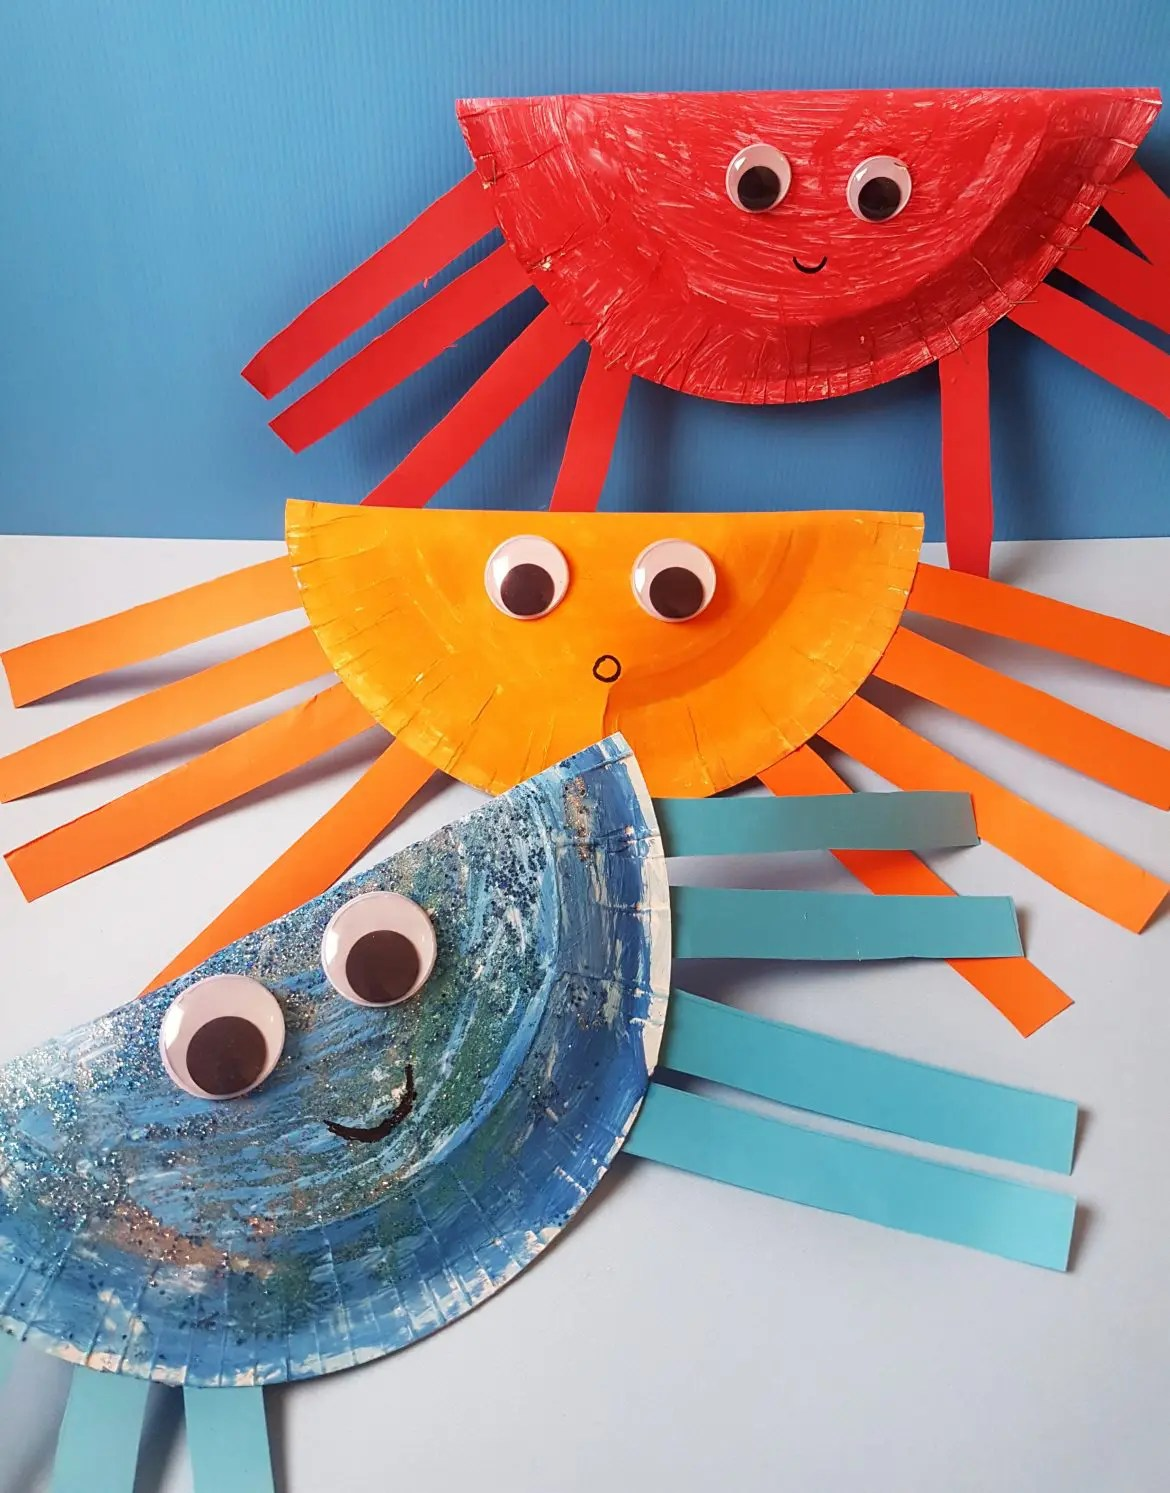 Trace and cut out the small round shape on pink paper and cut out the eyes from the template. Easy To Make Paper Plate Crab Craft For Toddlers